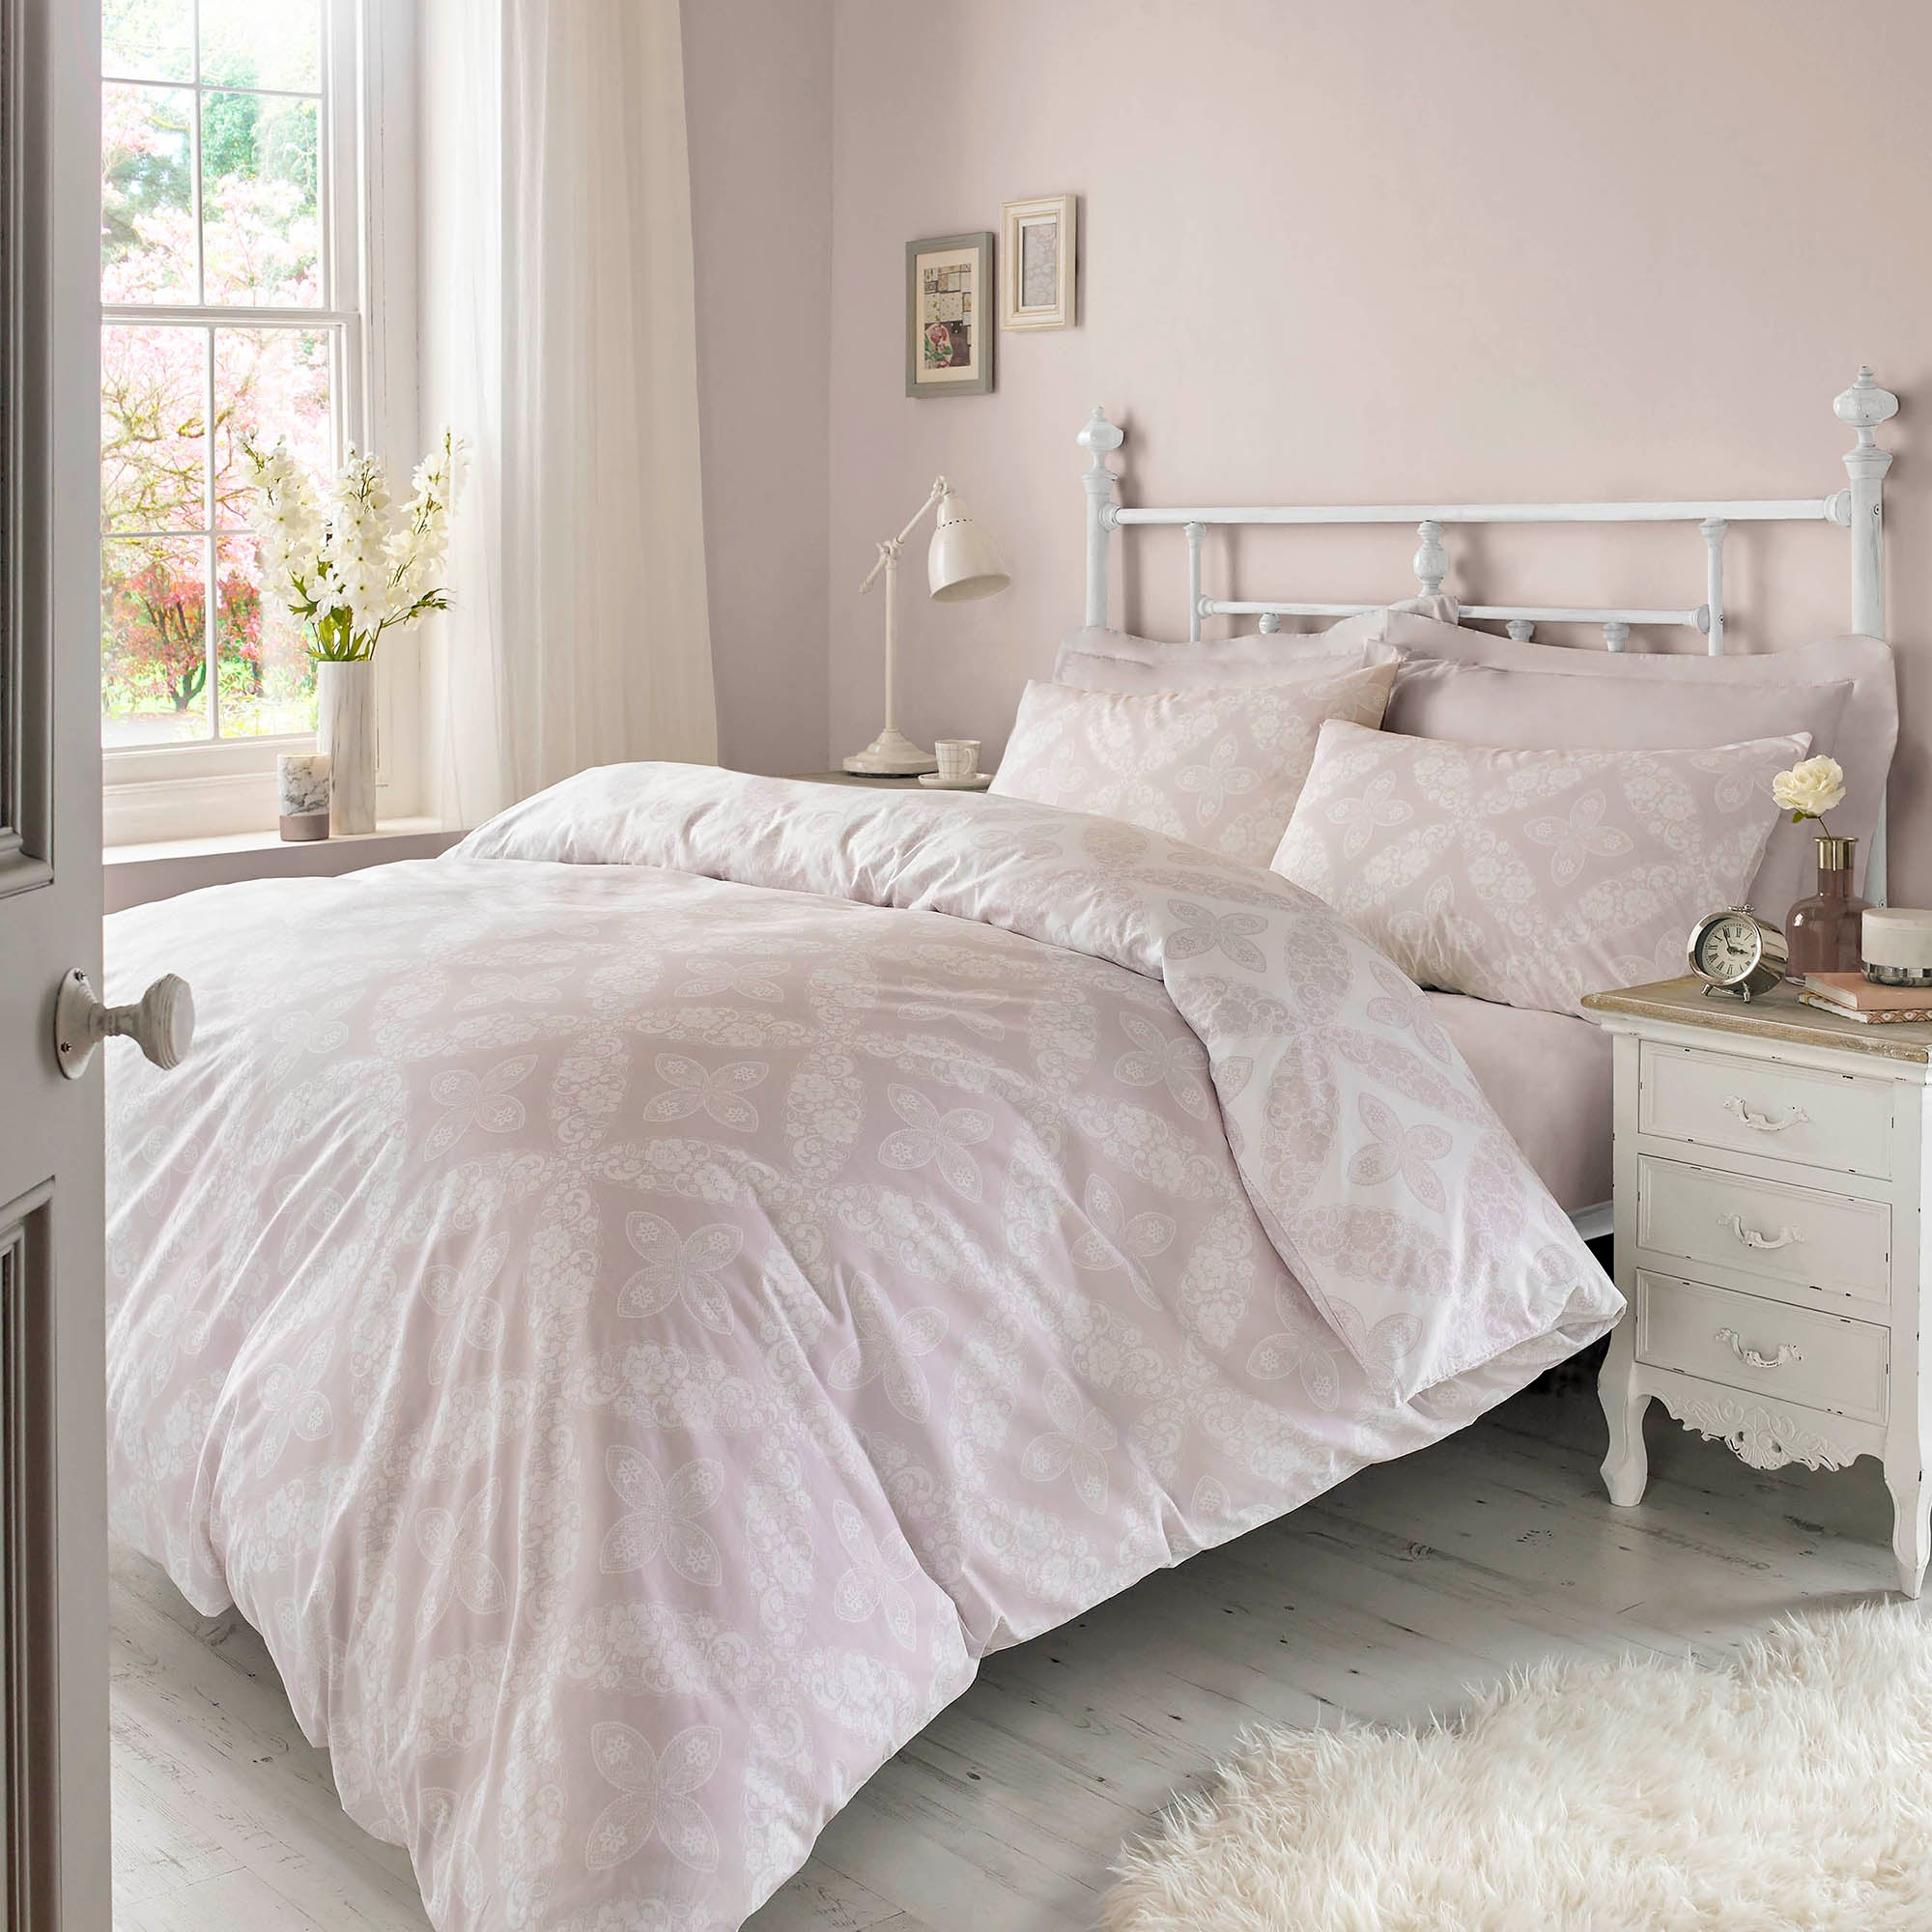 Twiggy Alicia Shell Bed Linen Collection